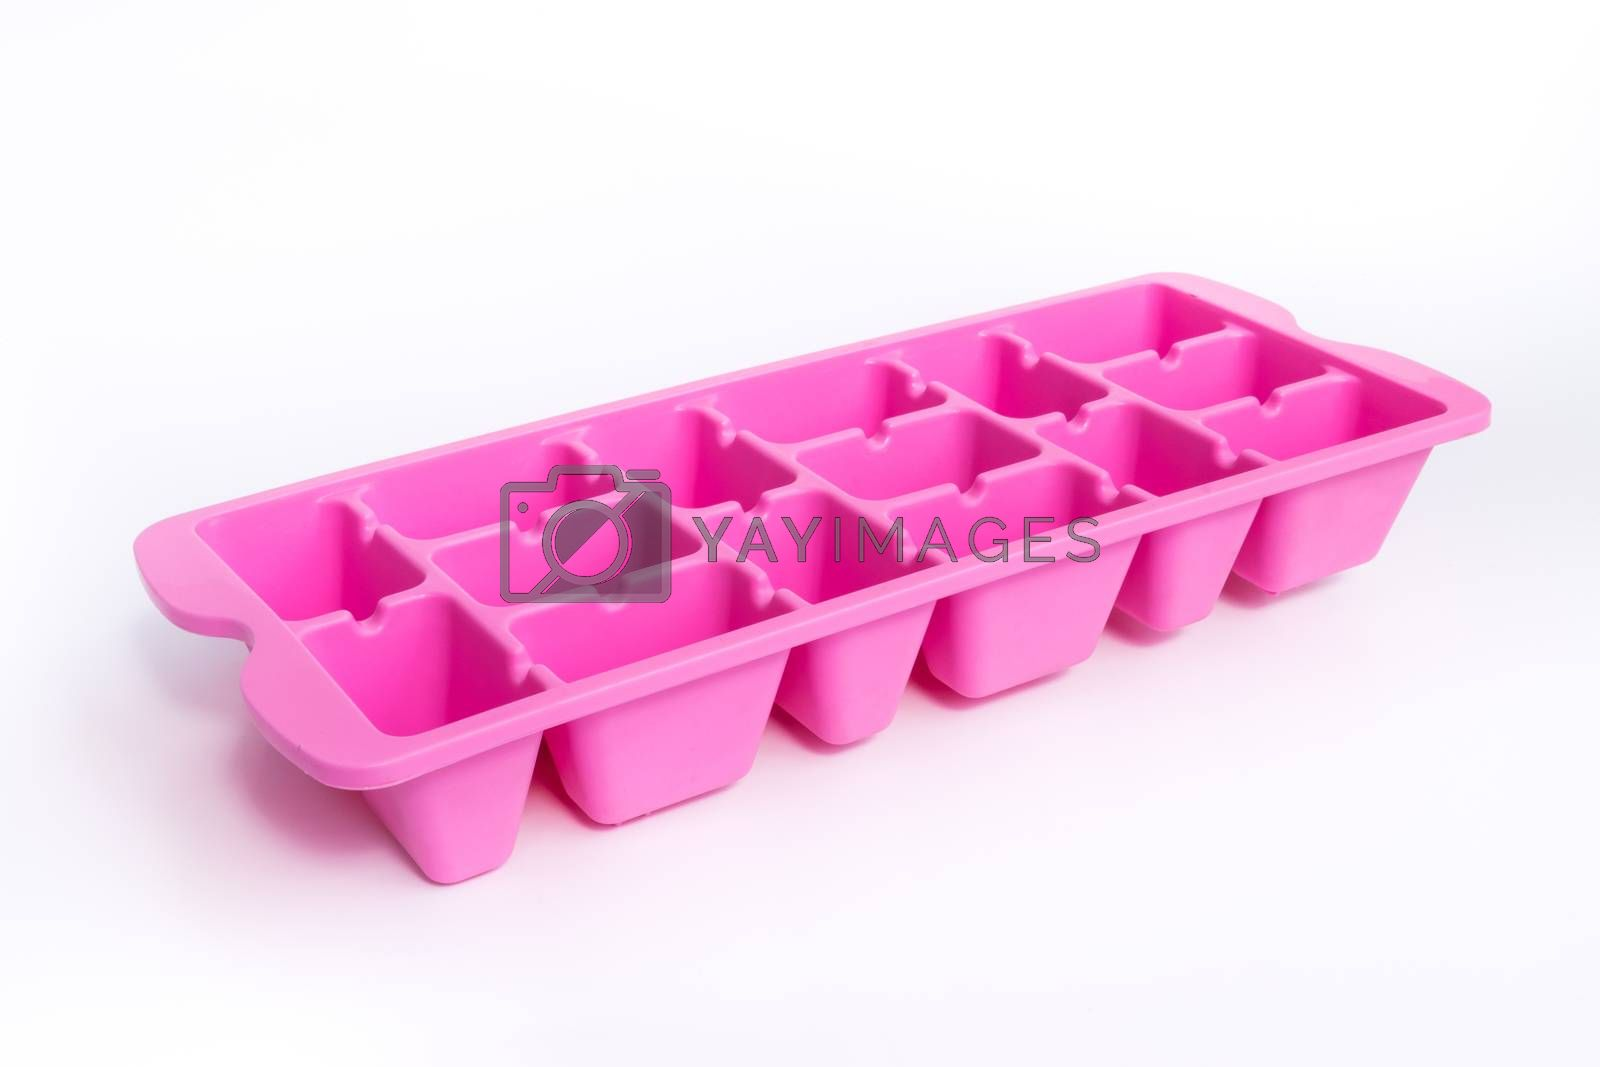 Colorful Pink ice tray a device for Ice